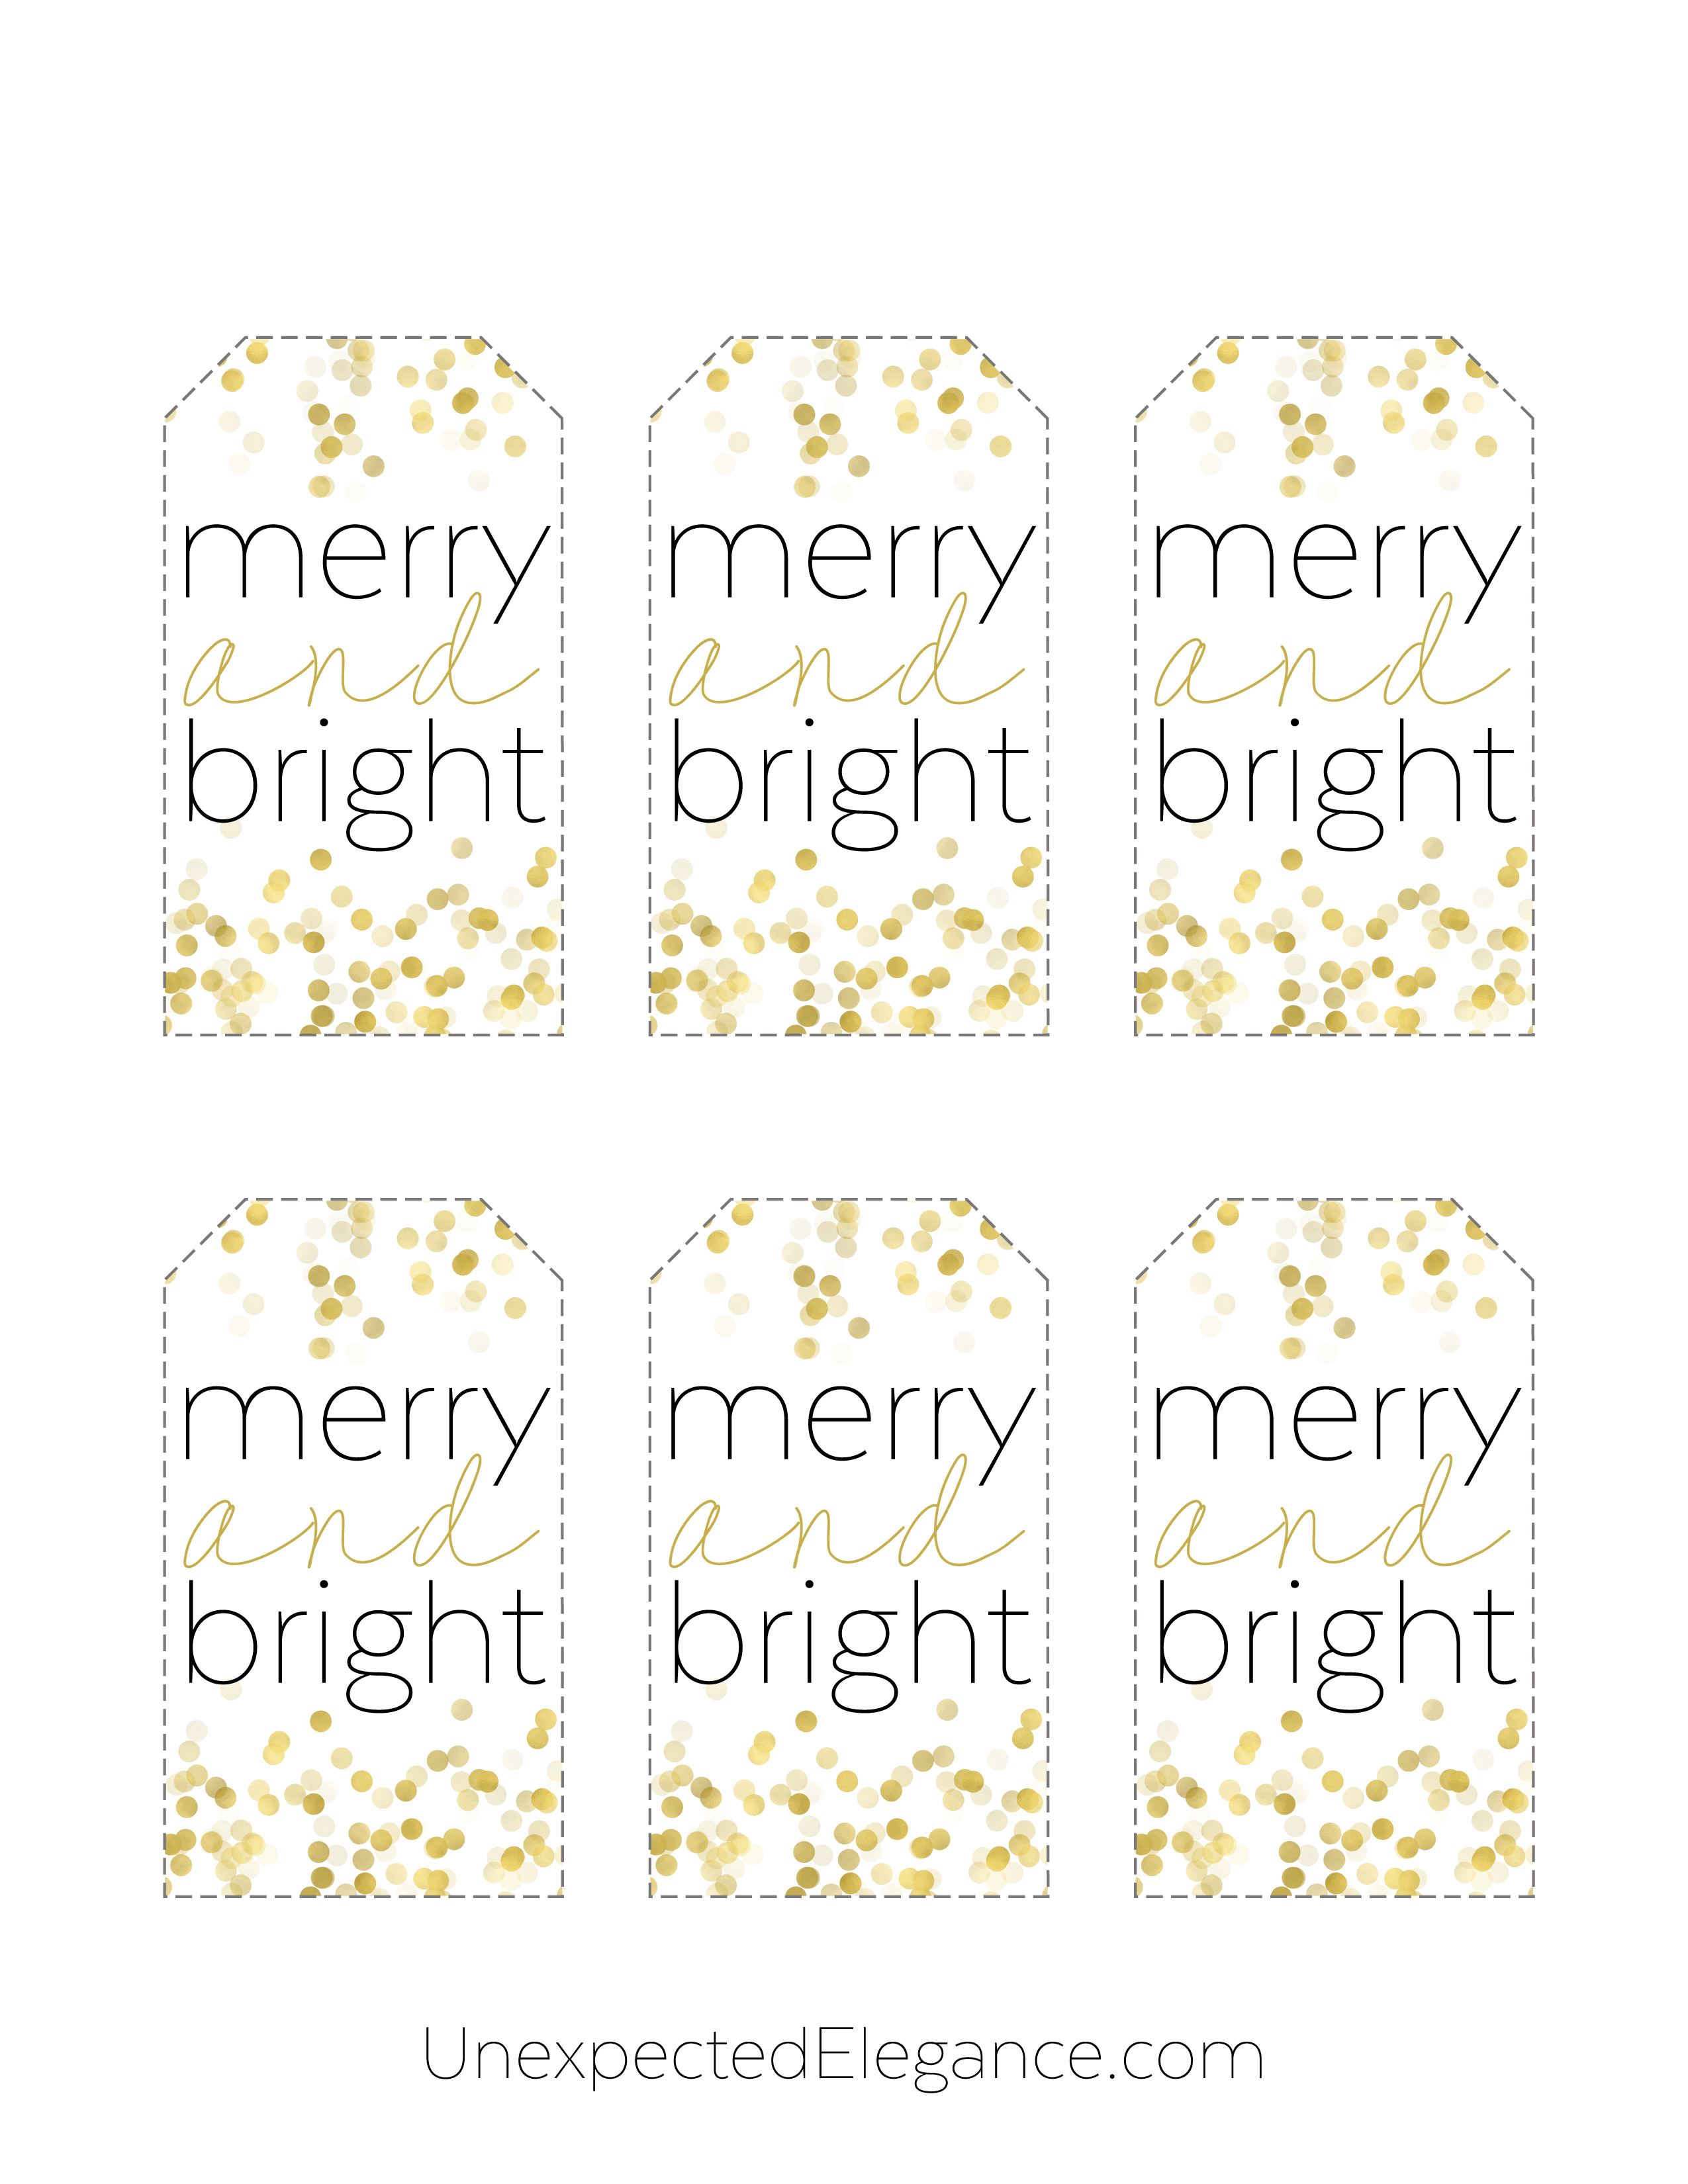 merry-and-bright-gift-tags-01